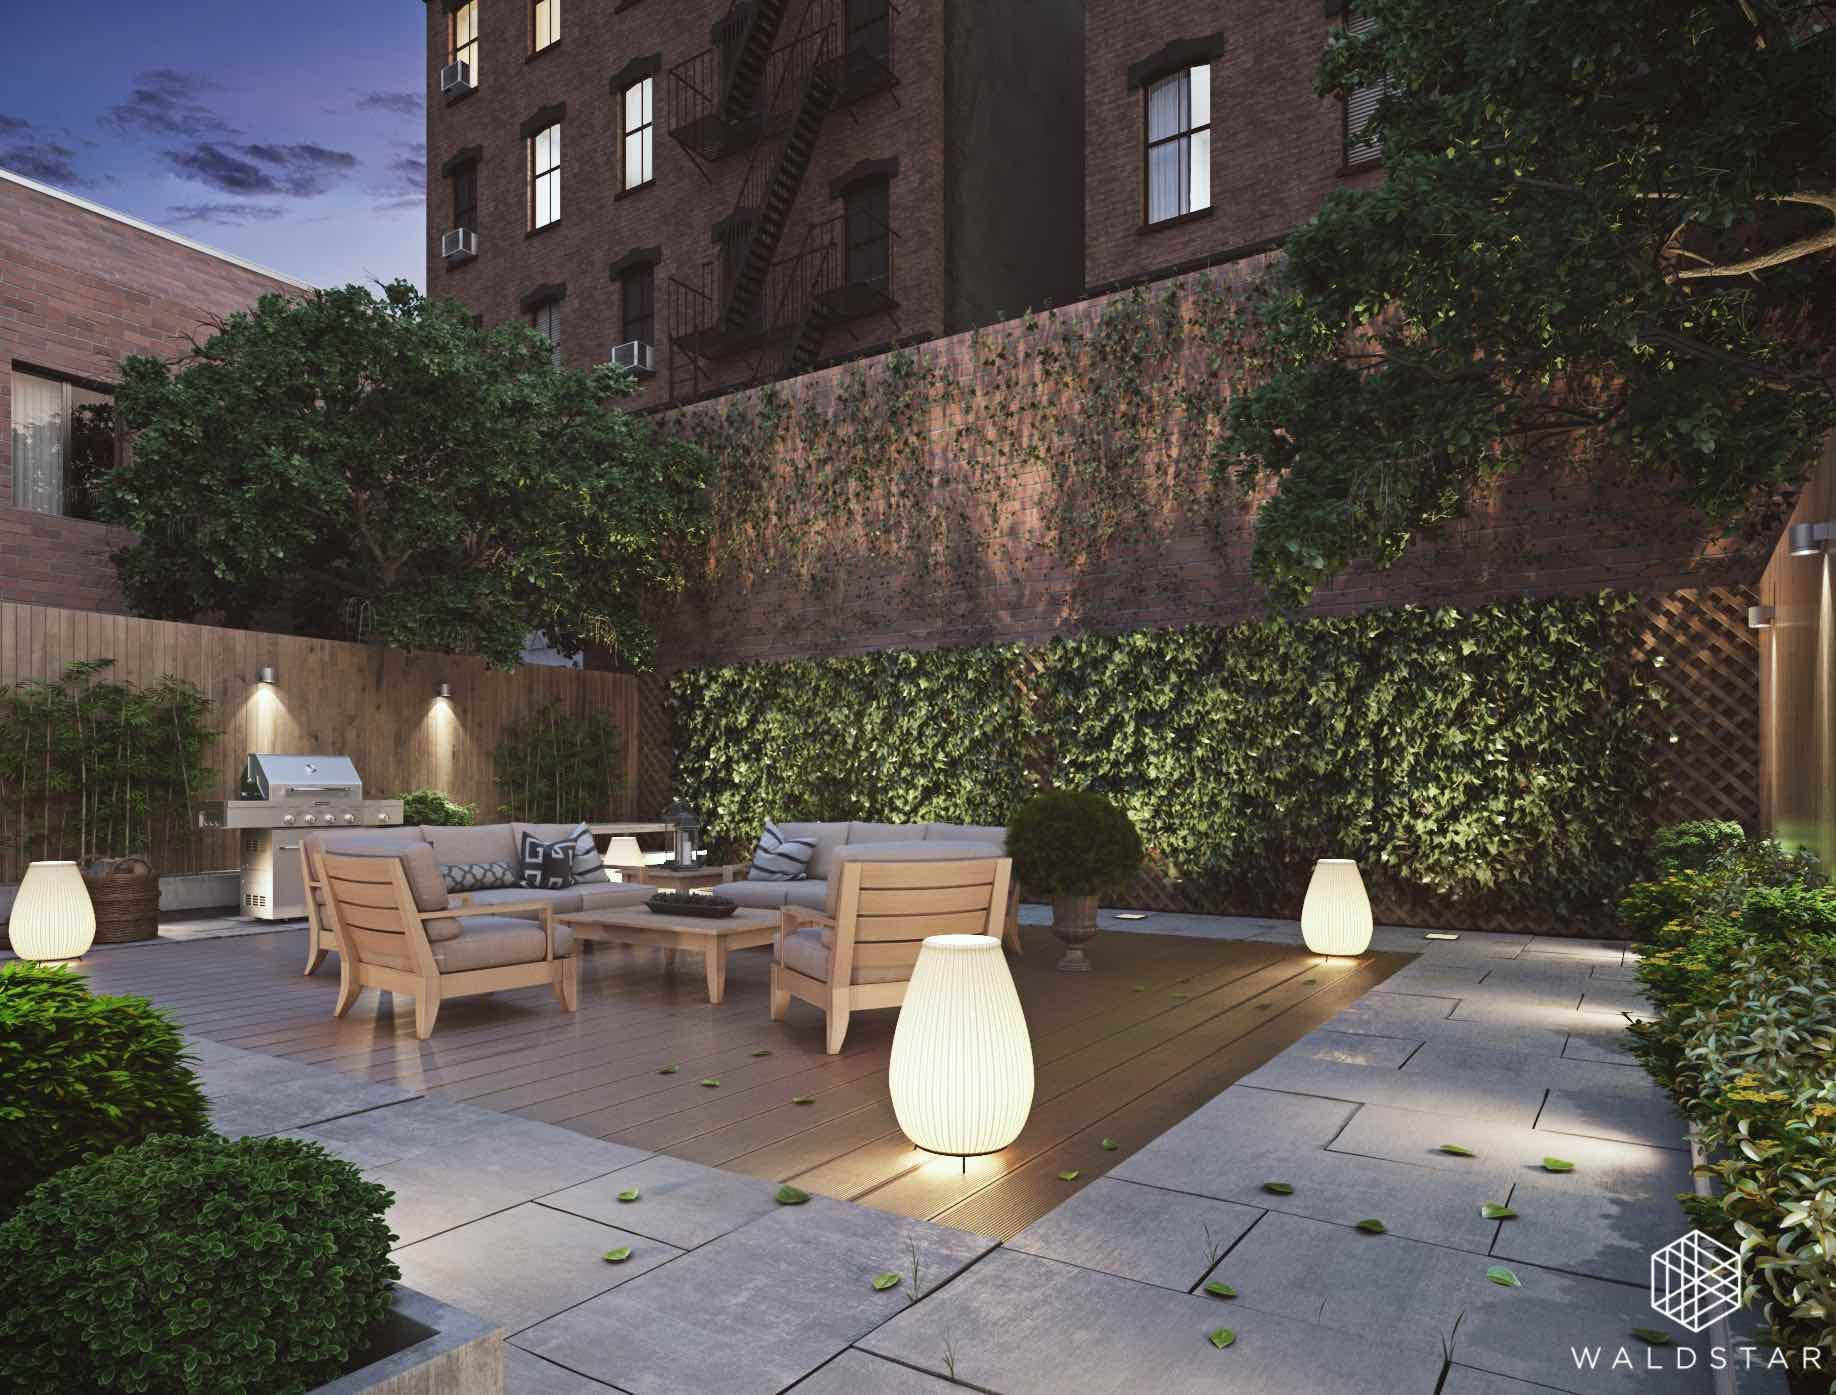 133-135 West 13th Street -  - New York City Townhouse Real Estate